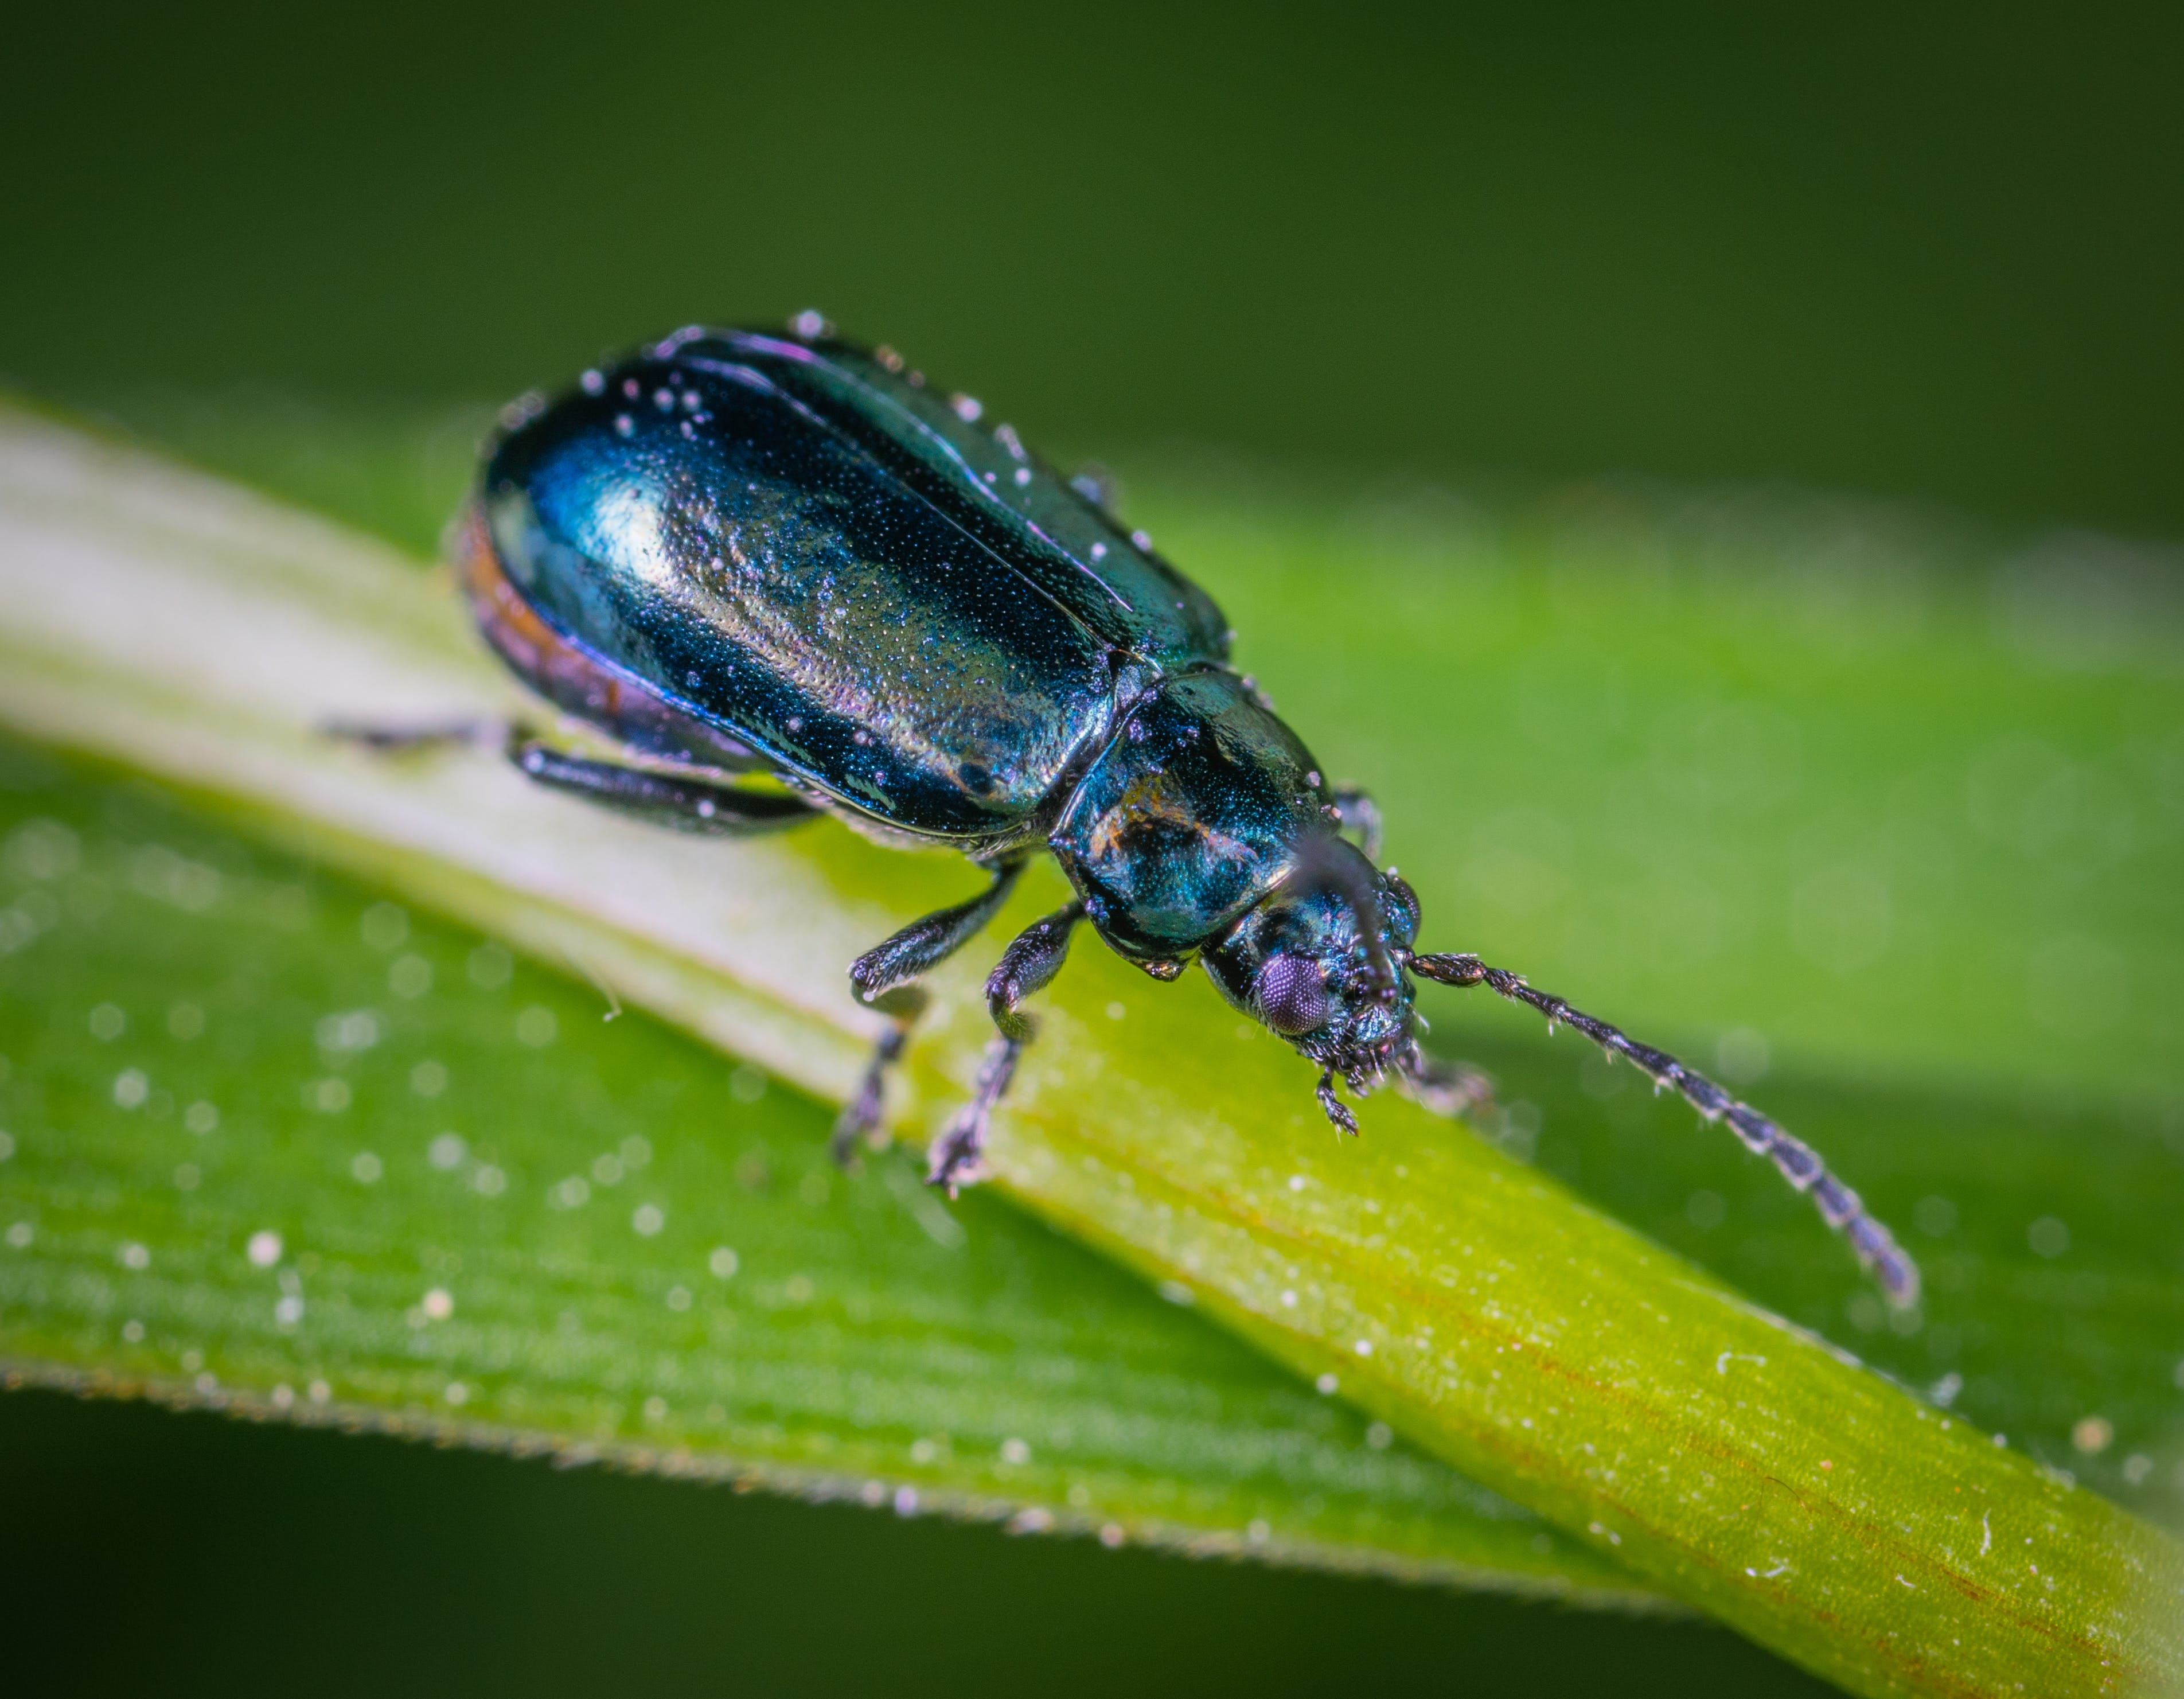 Beetle On Green Leaf In Close-up Photography